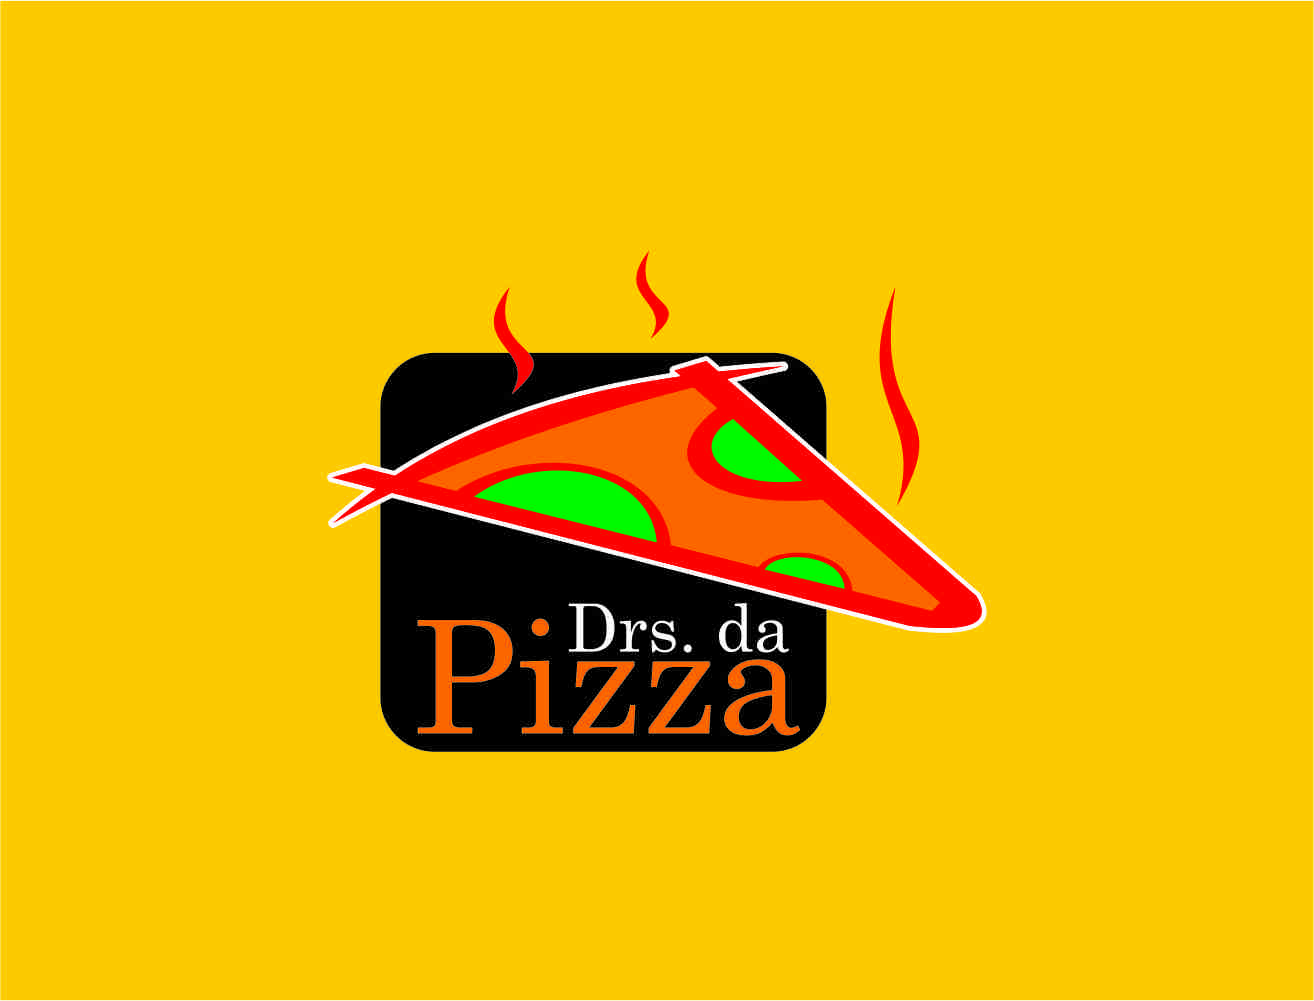 DRS. DA PIZZA